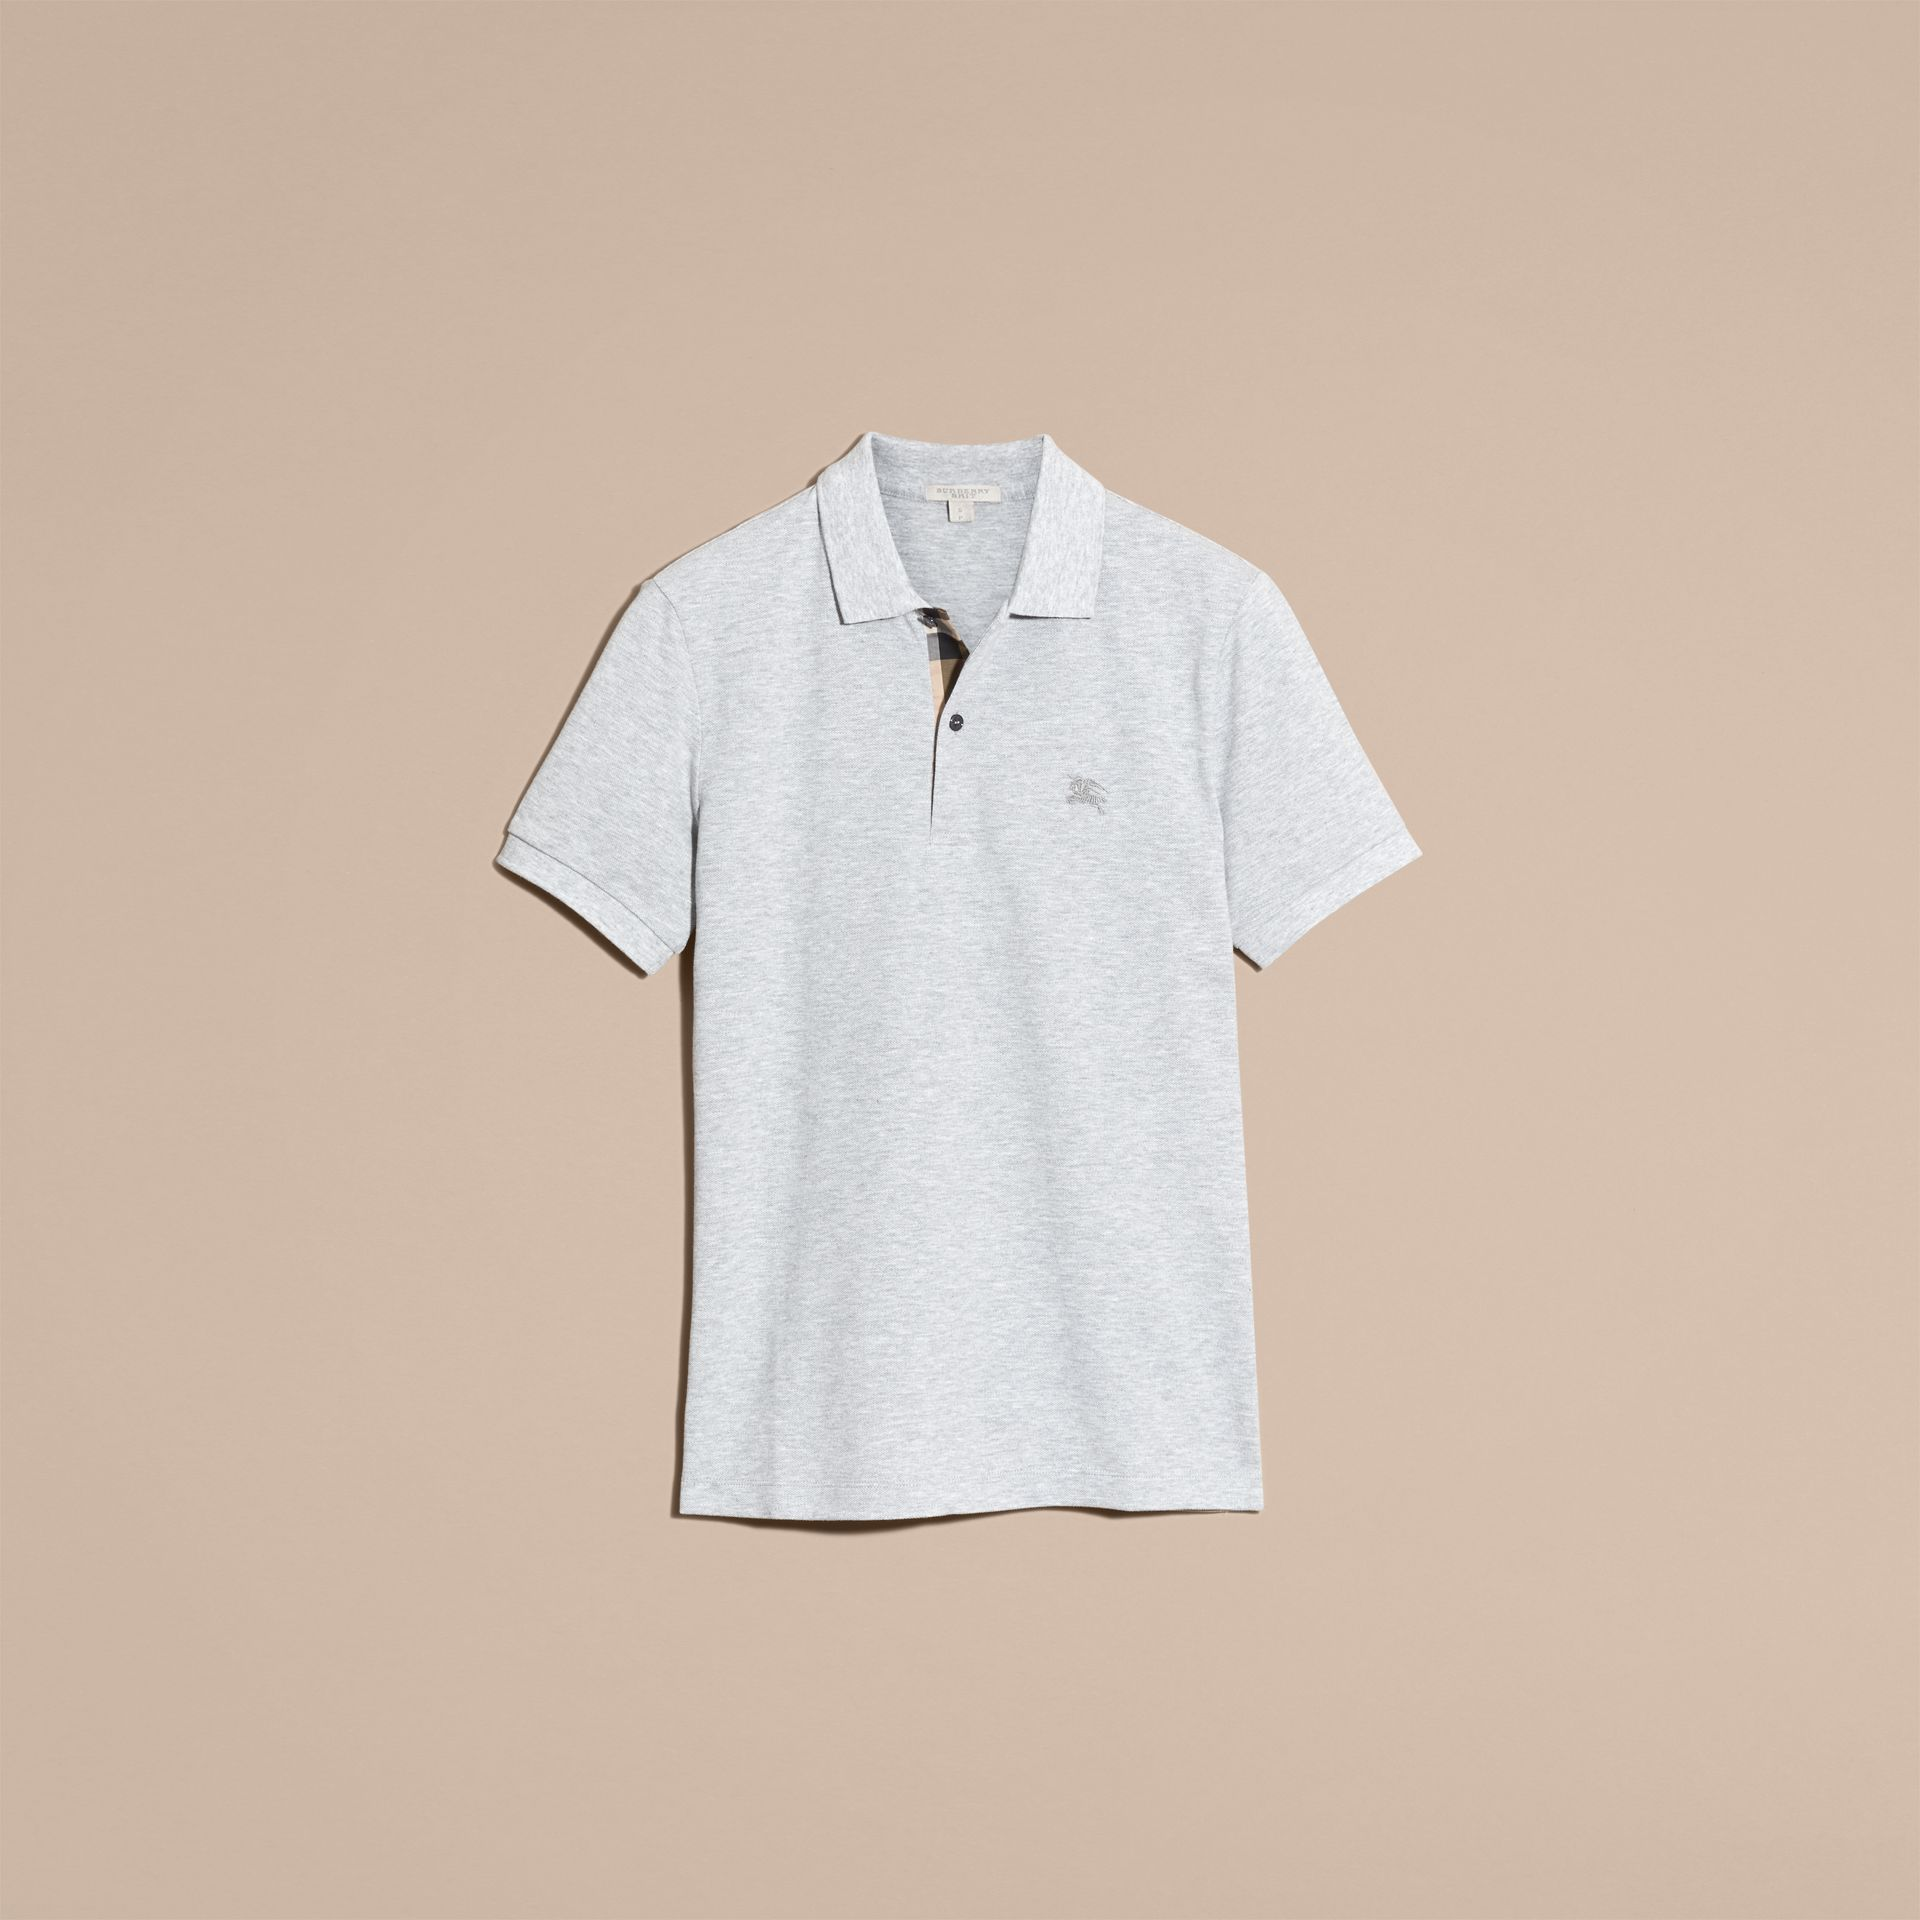 Pale grey melange Check Placket Cotton Piqué Polo Shirt Pale Grey Melange - gallery image 5